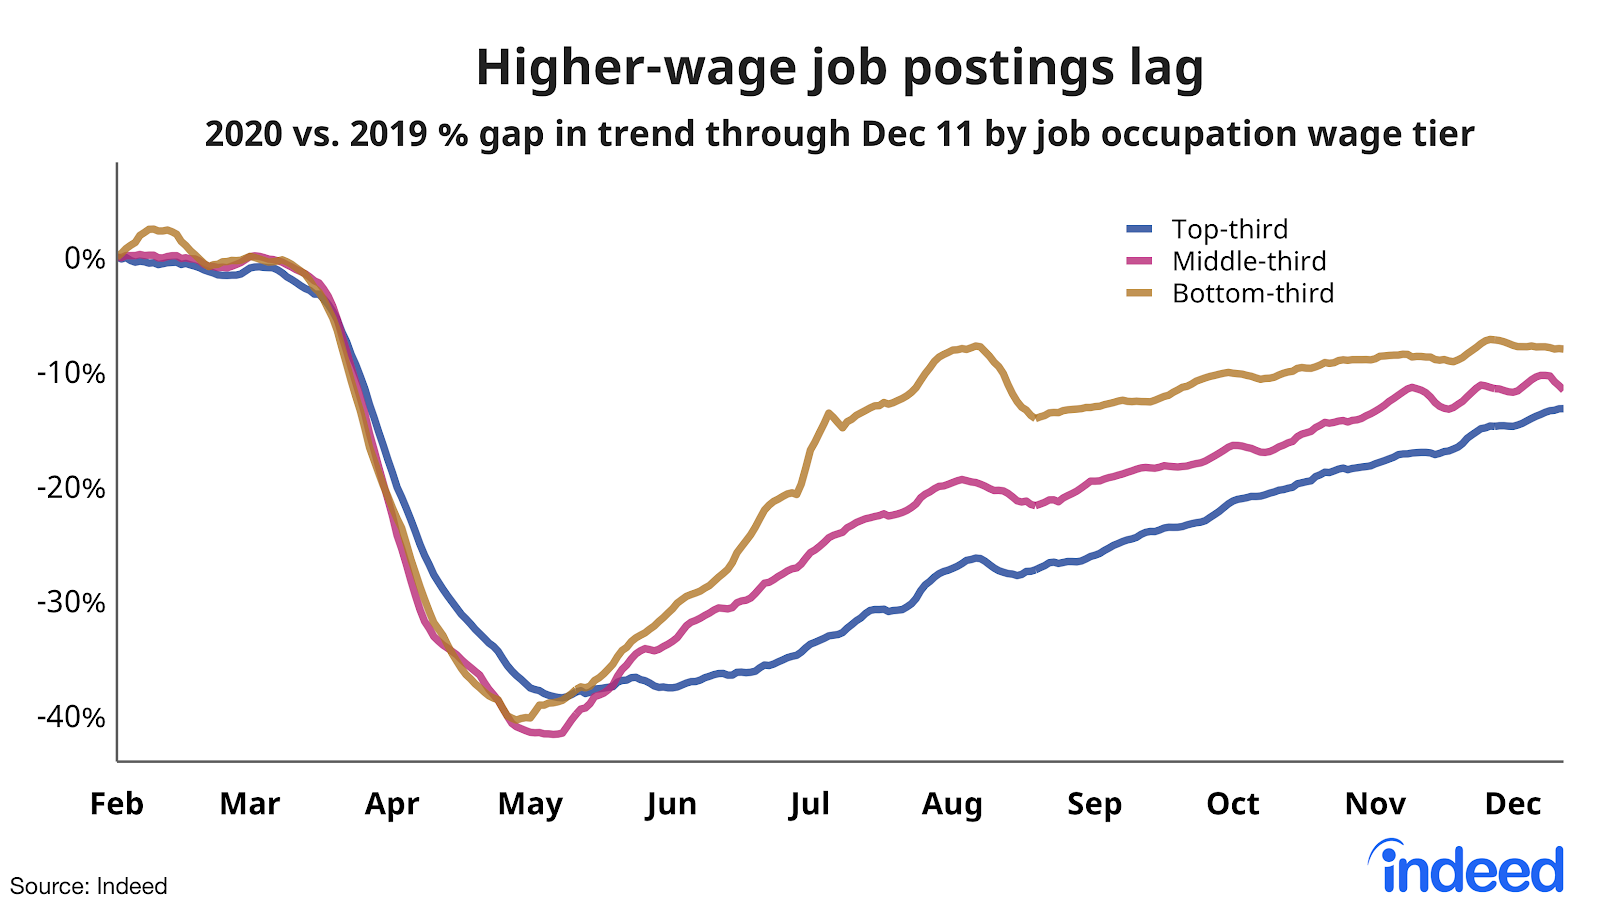 Line graph showing high-wage job postings on Indeed are lagging